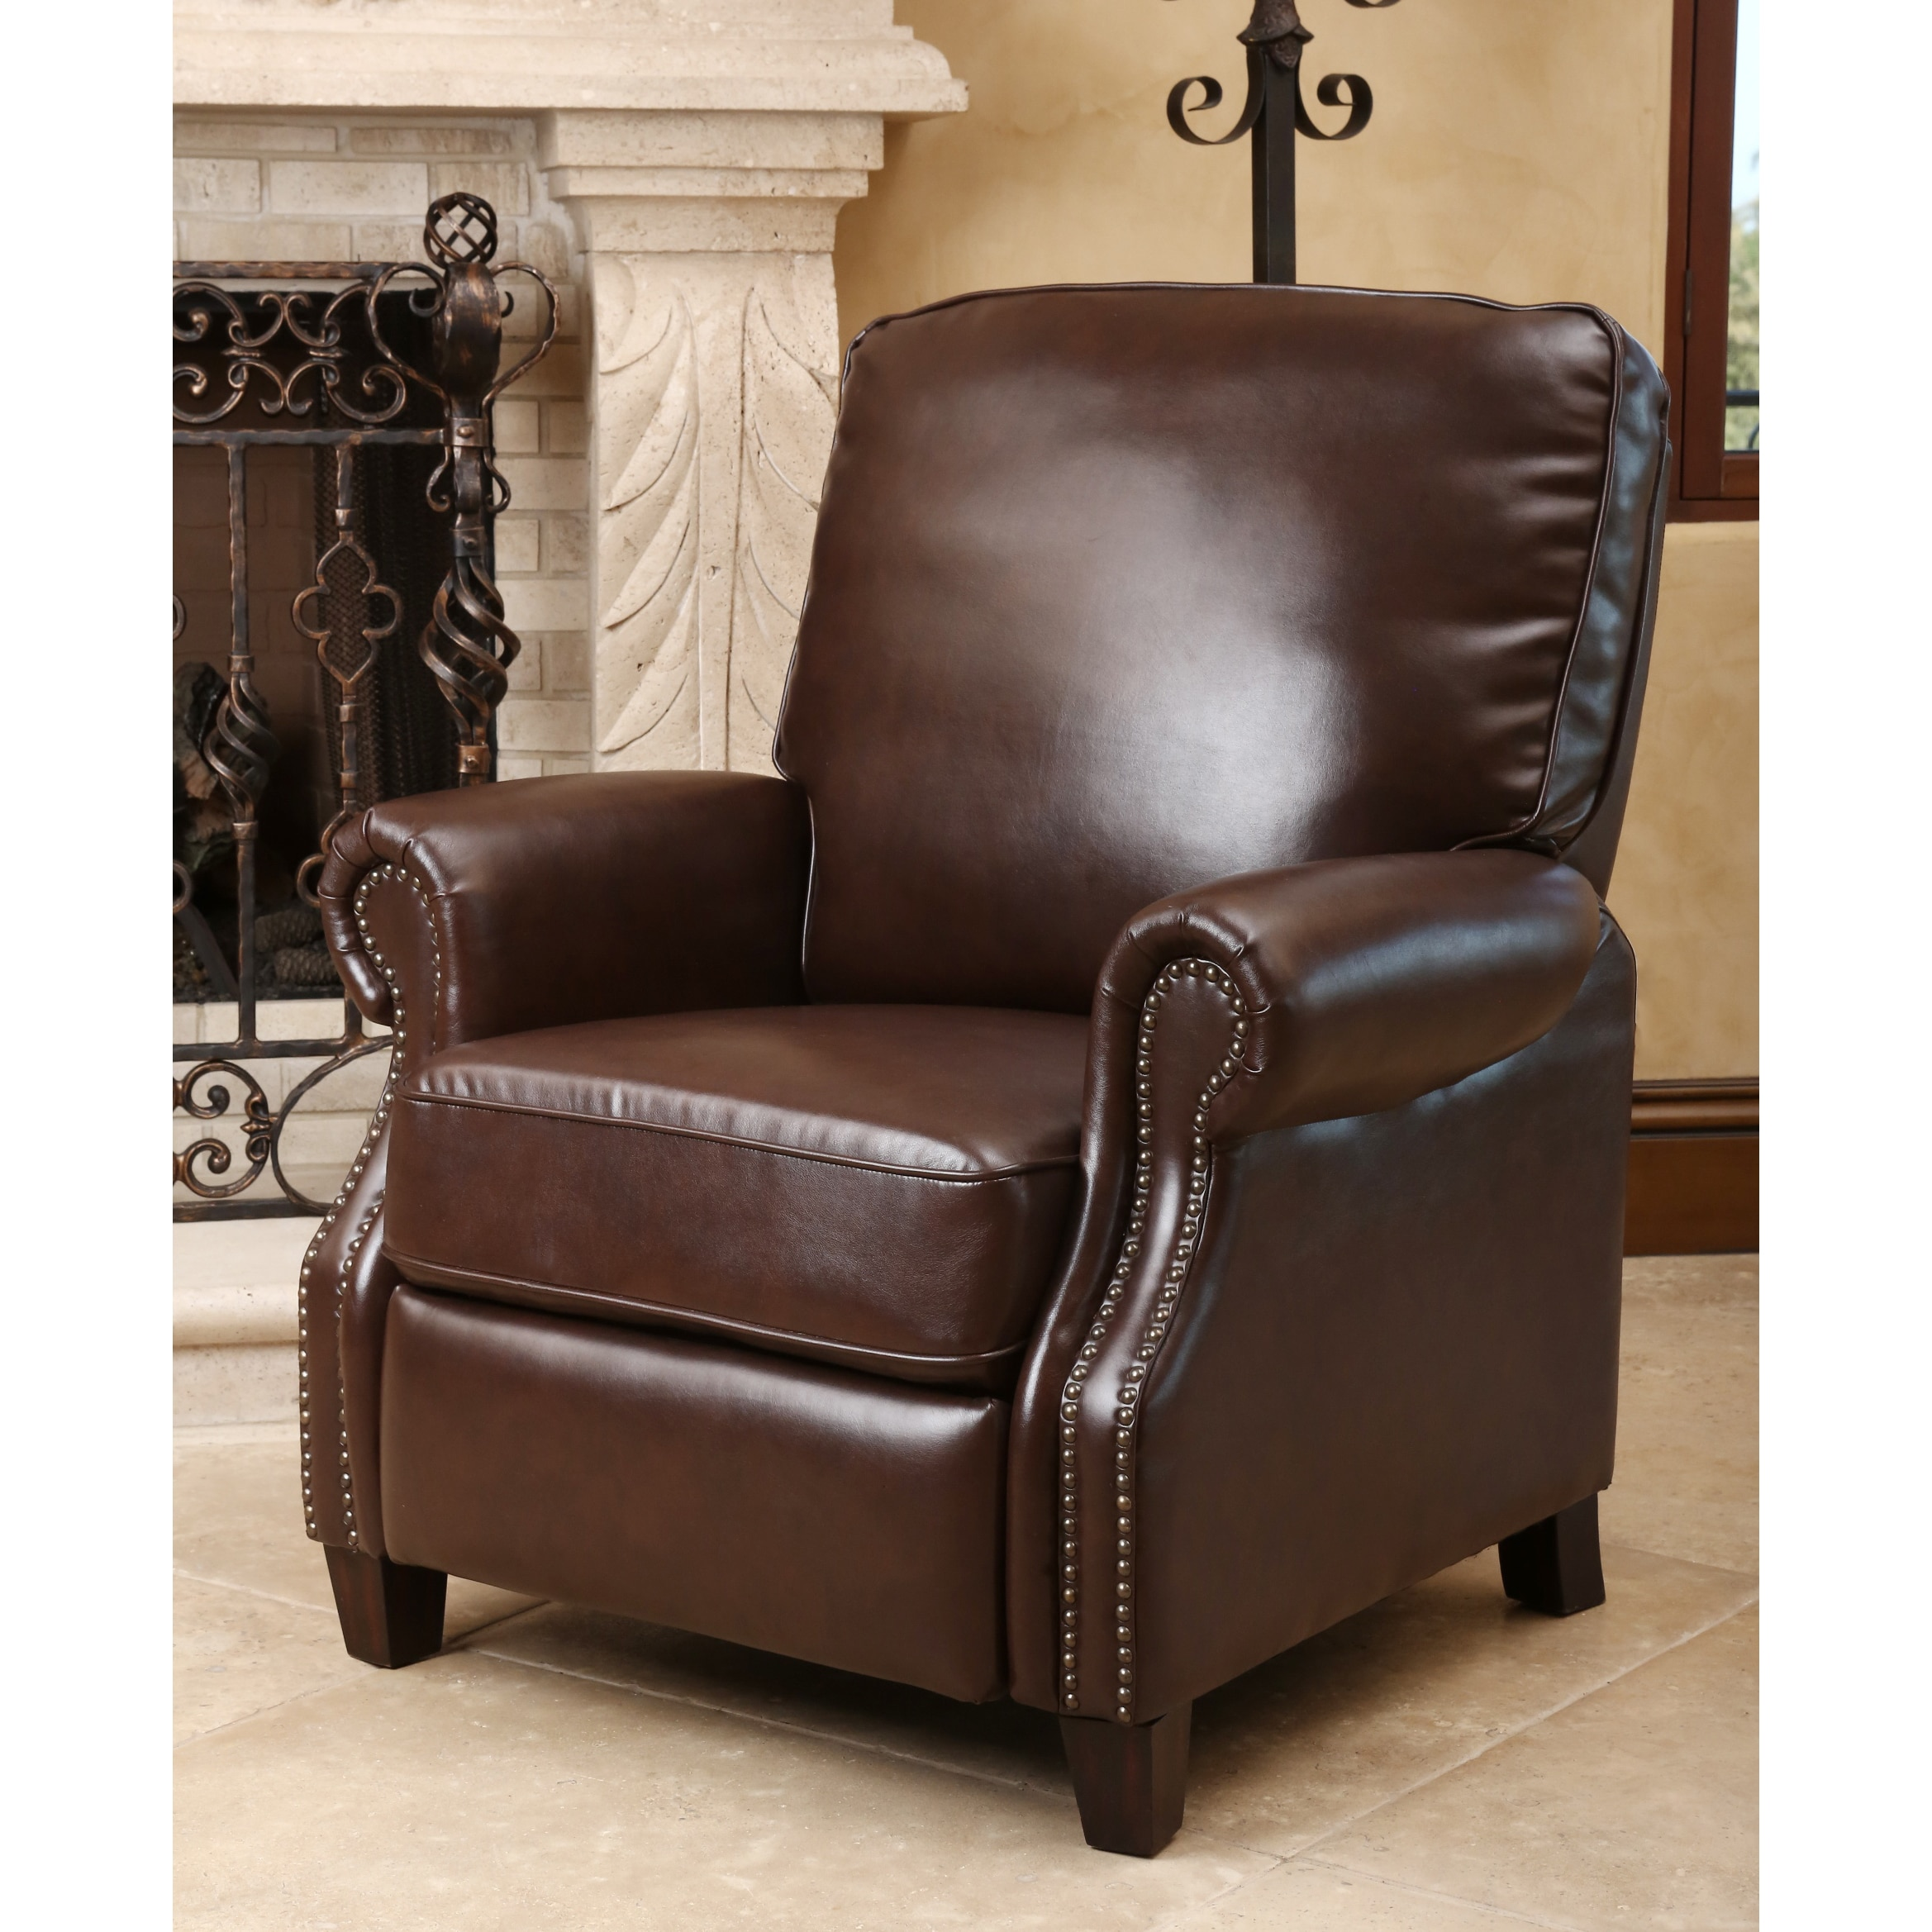 abbyson living rocking chair walmart lift chairs carla brown bonded leather push back